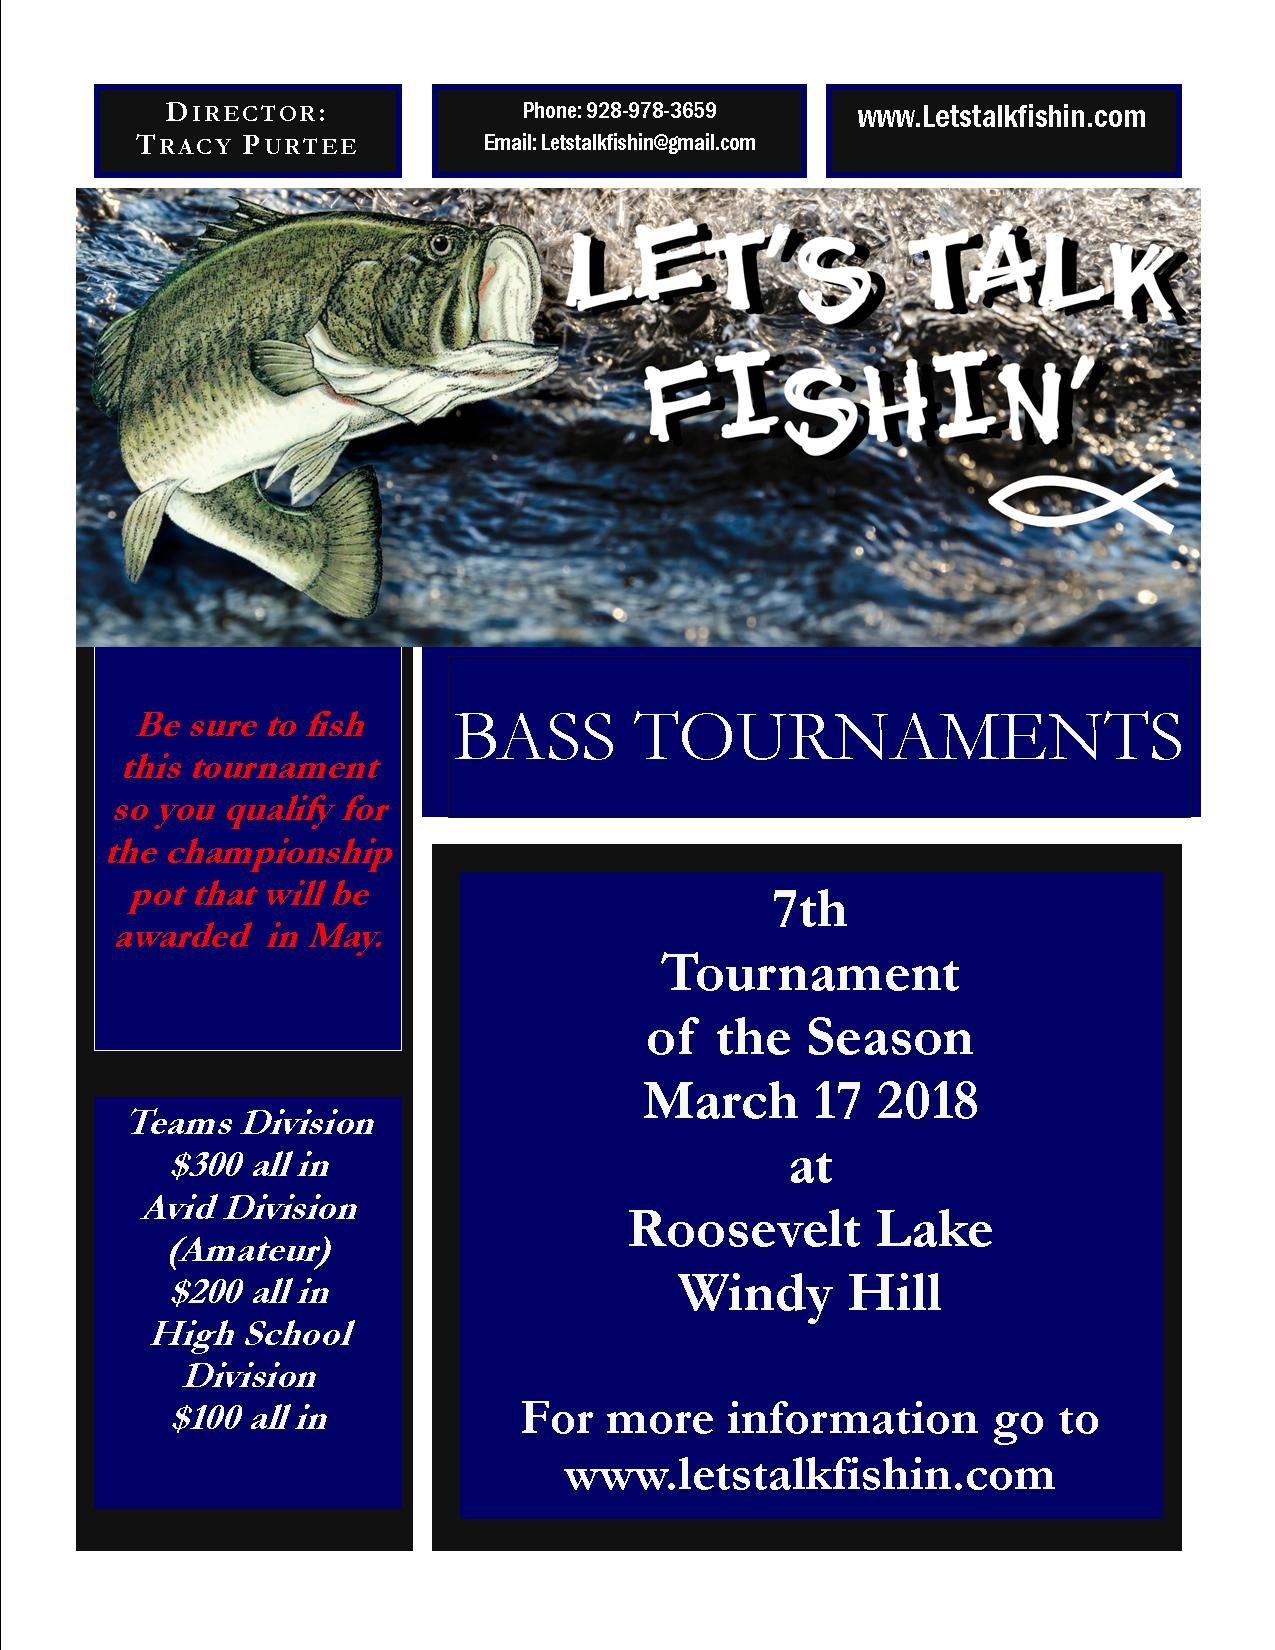 Click image for larger version  Name:7th Tournament.jpg Views:1340 Size:283.6 KB ID:96826